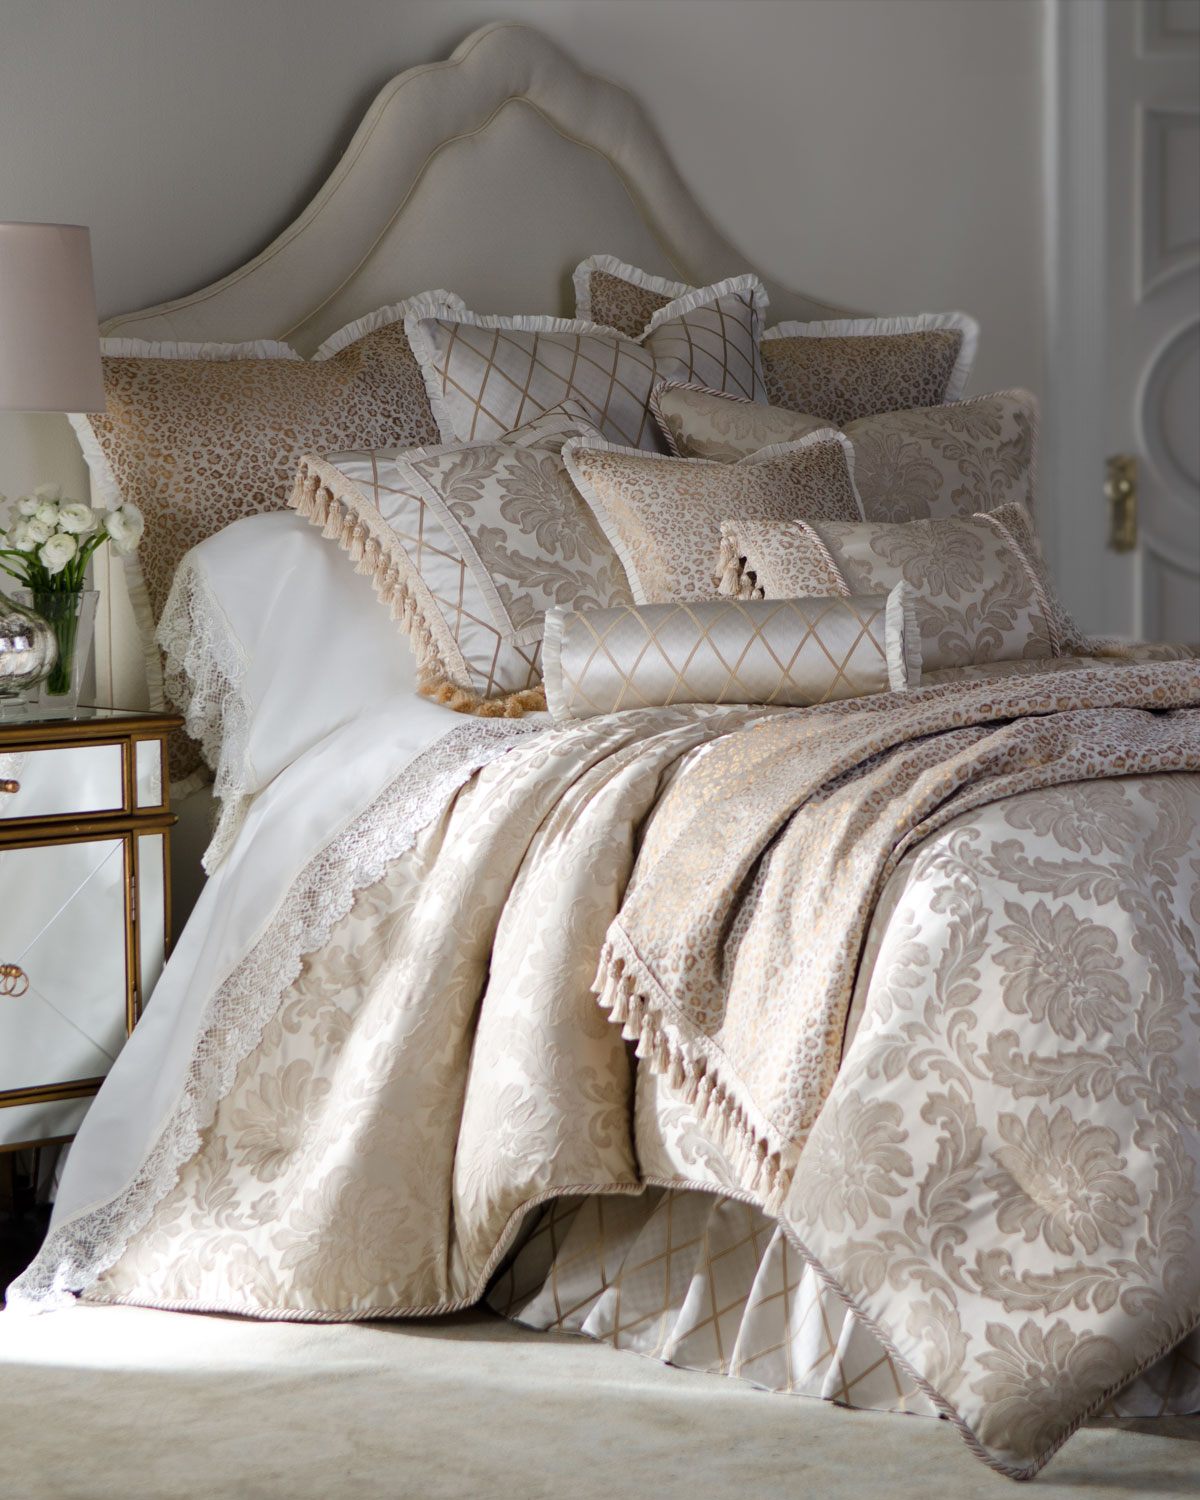 Darby Queen Damask Duvet Cover